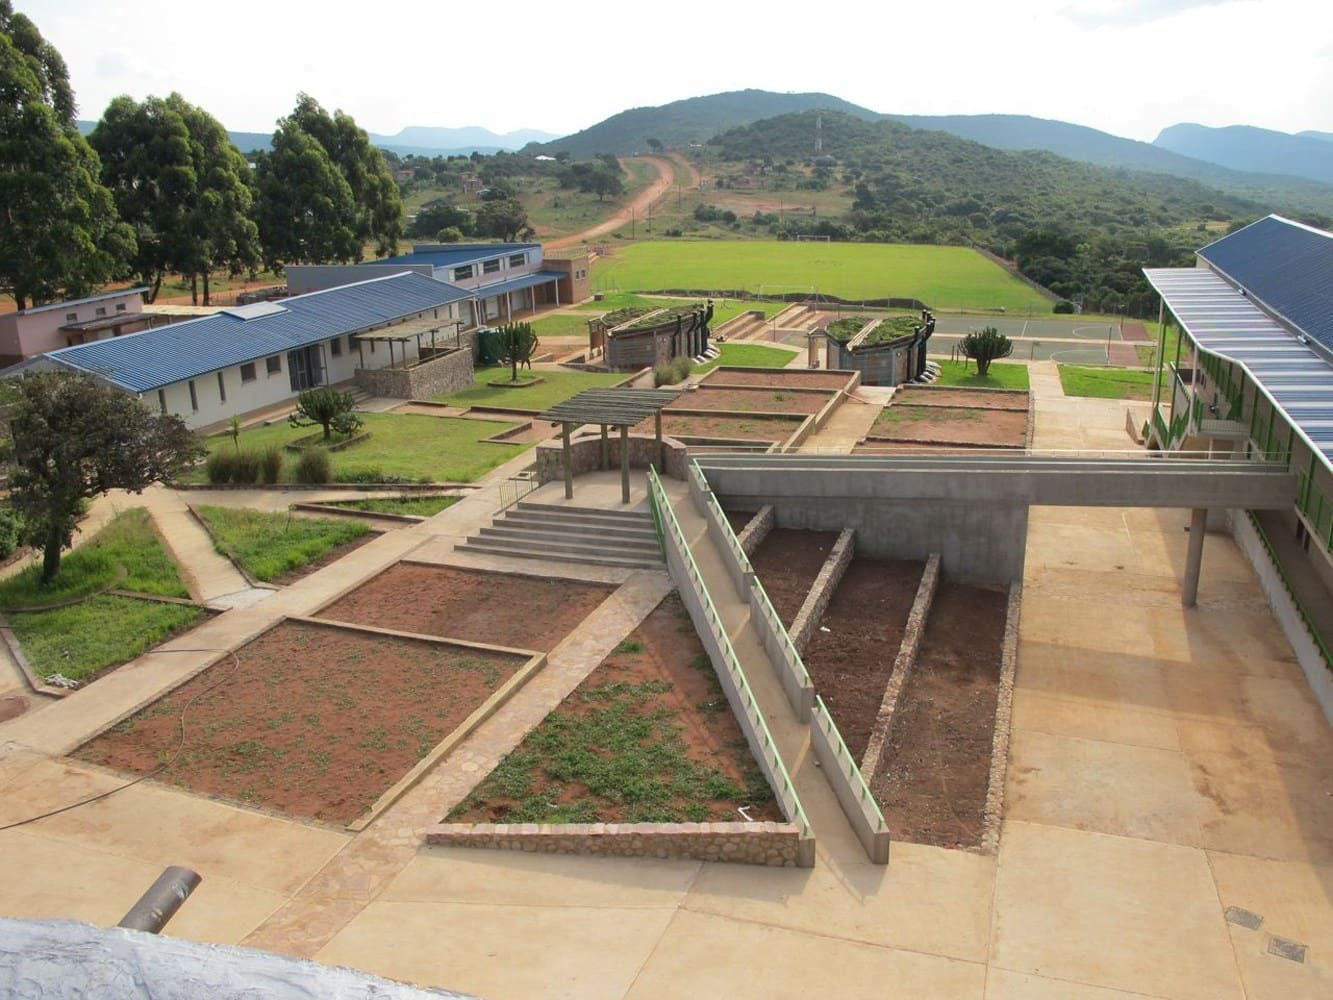 architects african schools south coast east africa architecture architectural secondary rural award sustainable vele environmental designed three feature limpopo areas